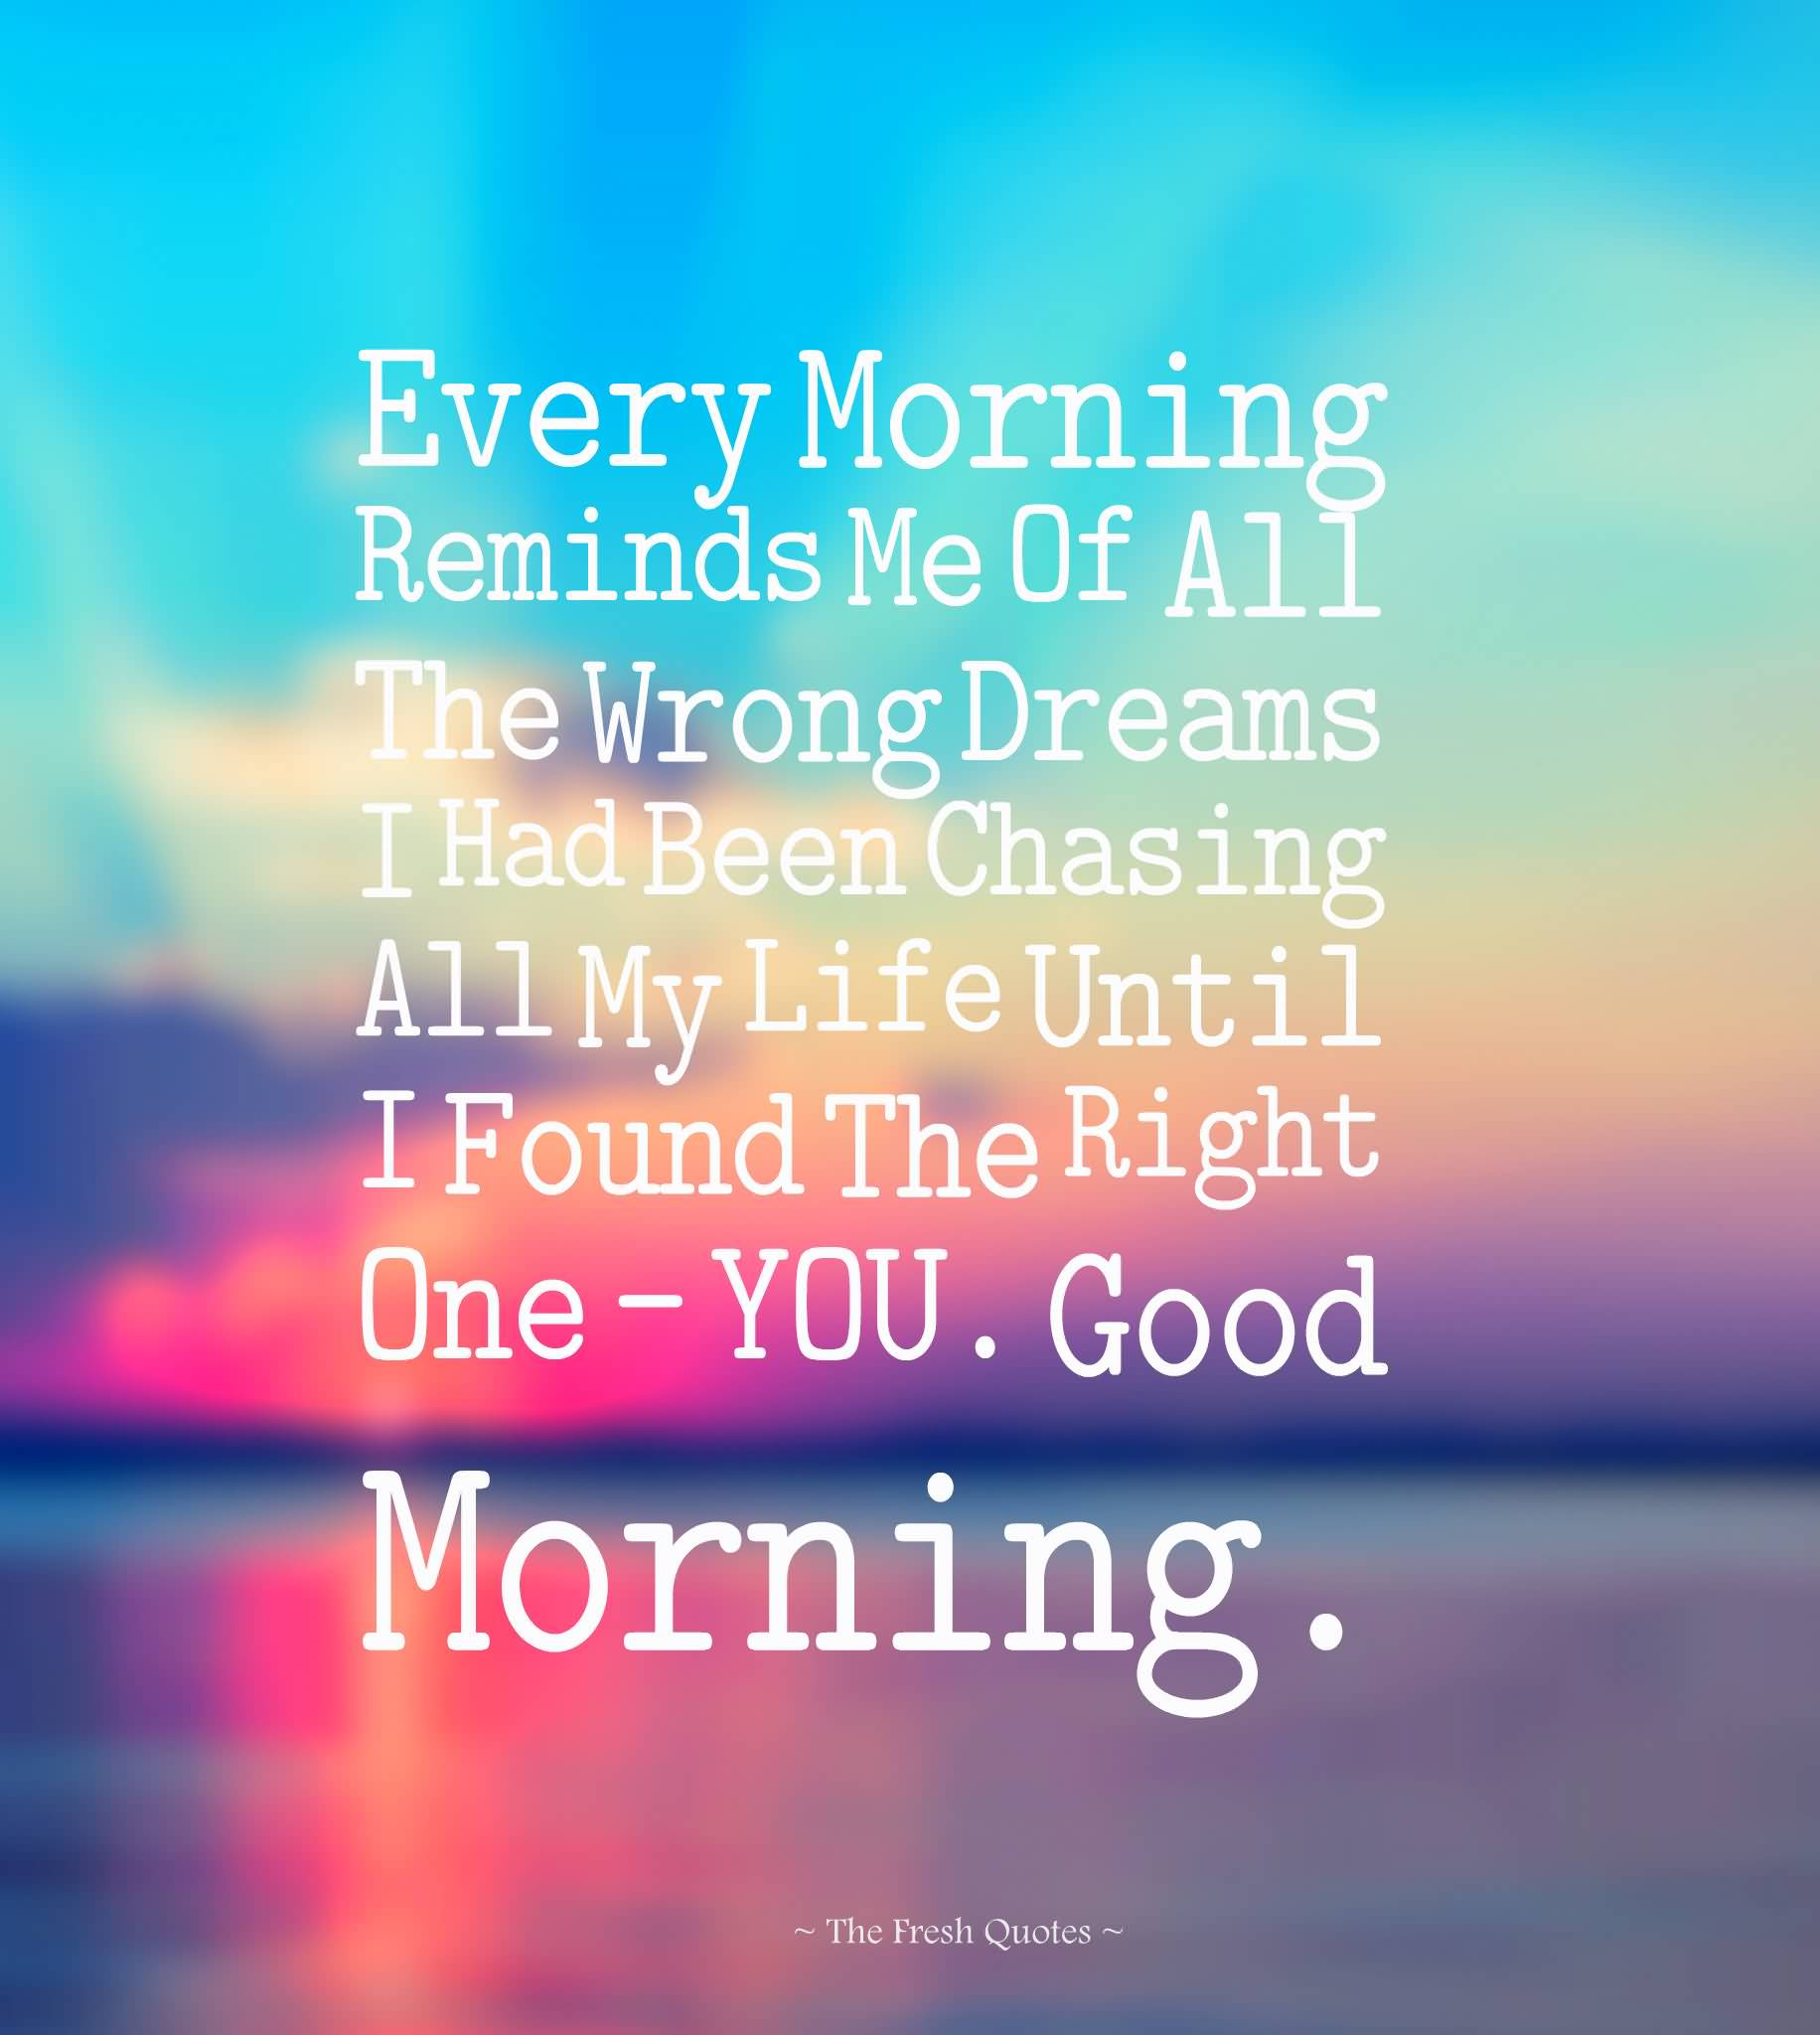 Good Morning Love Quotes 05